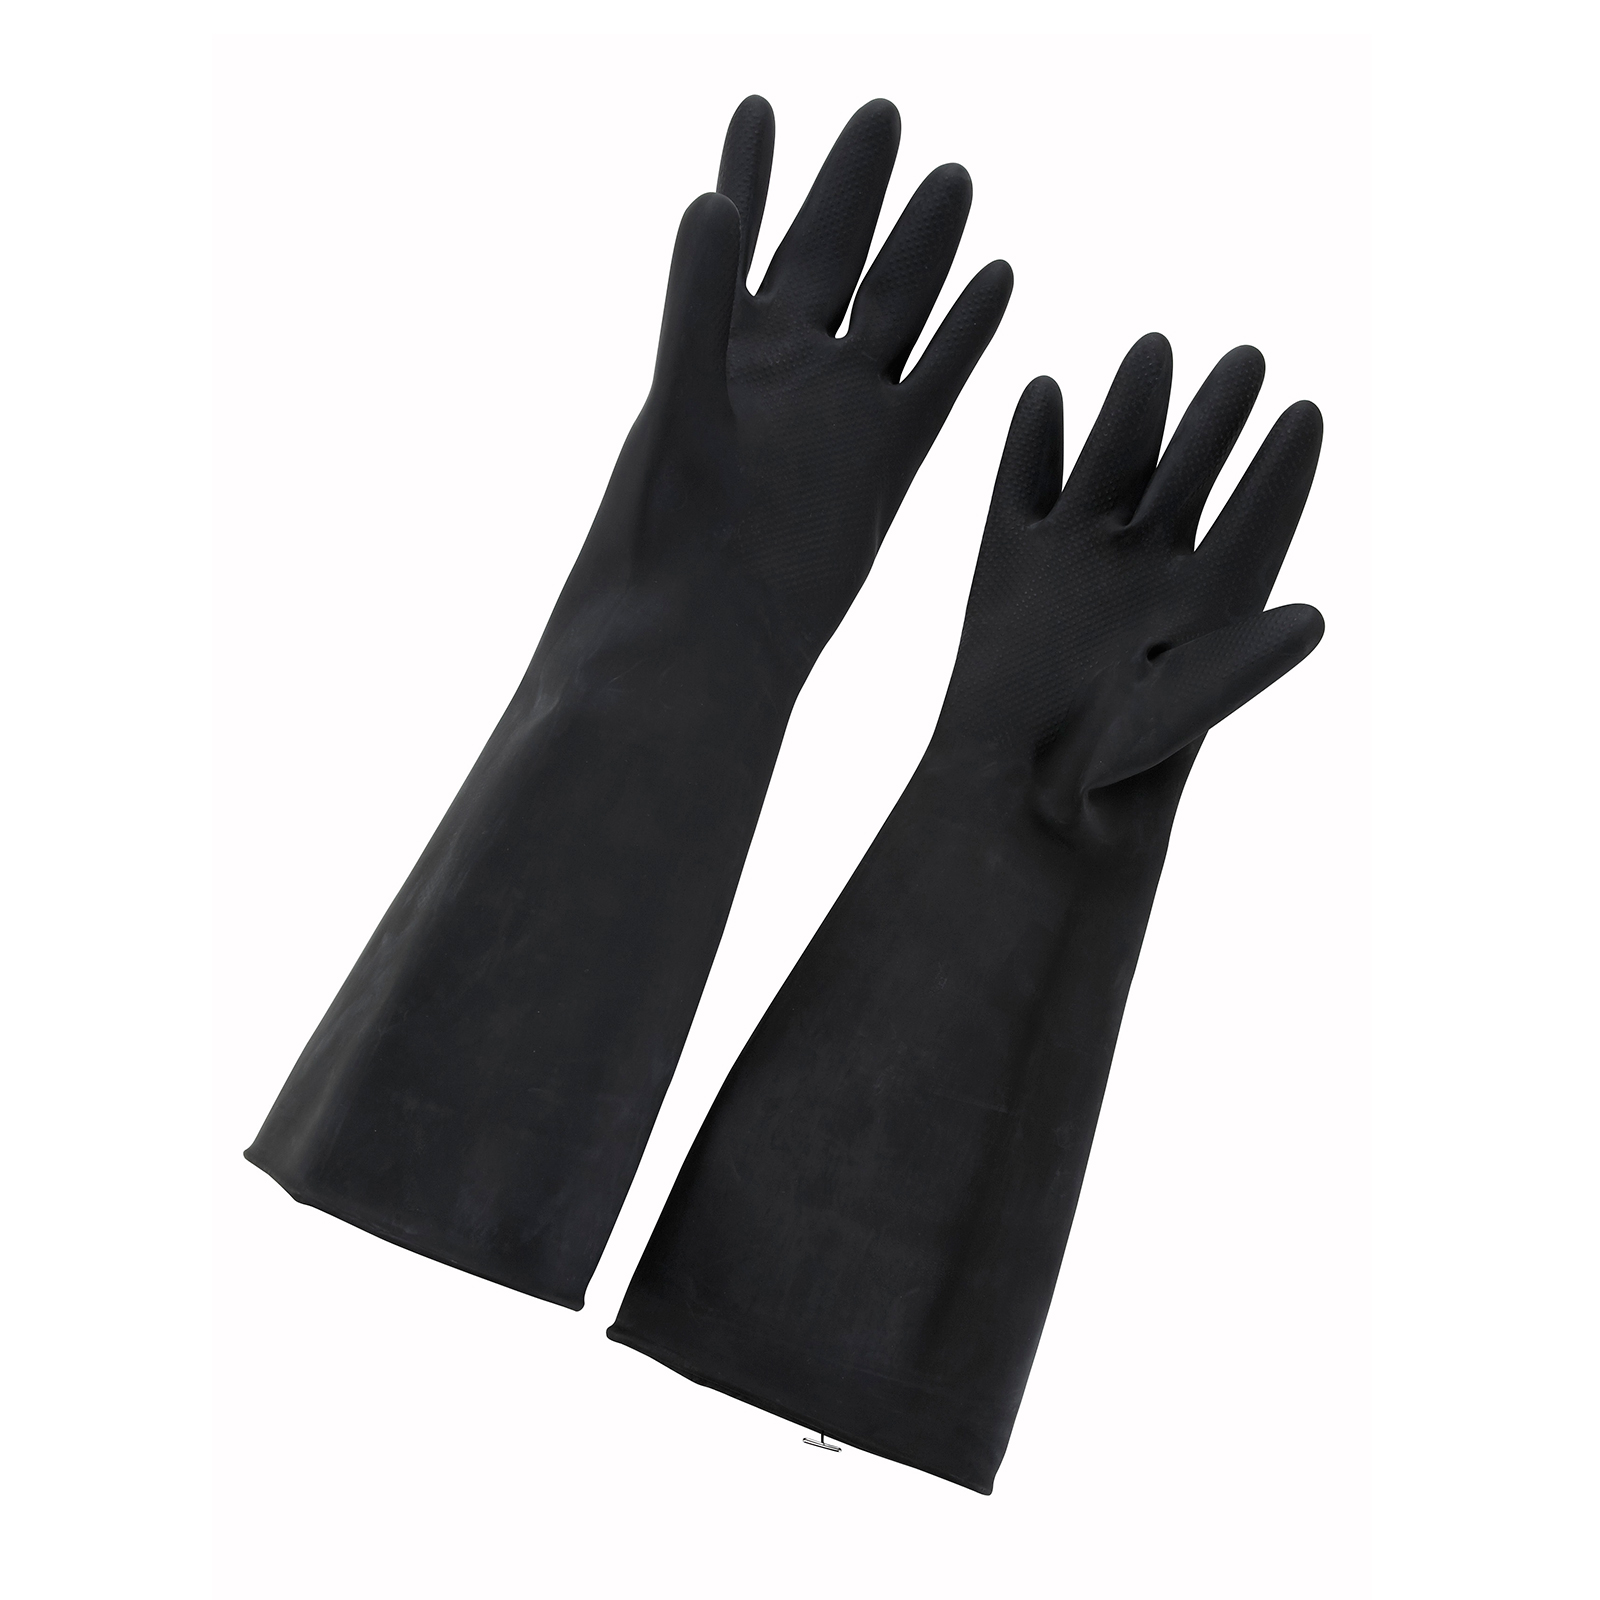 1550-16 Winco NLG-1018 gloves, dishwashing / cleaning